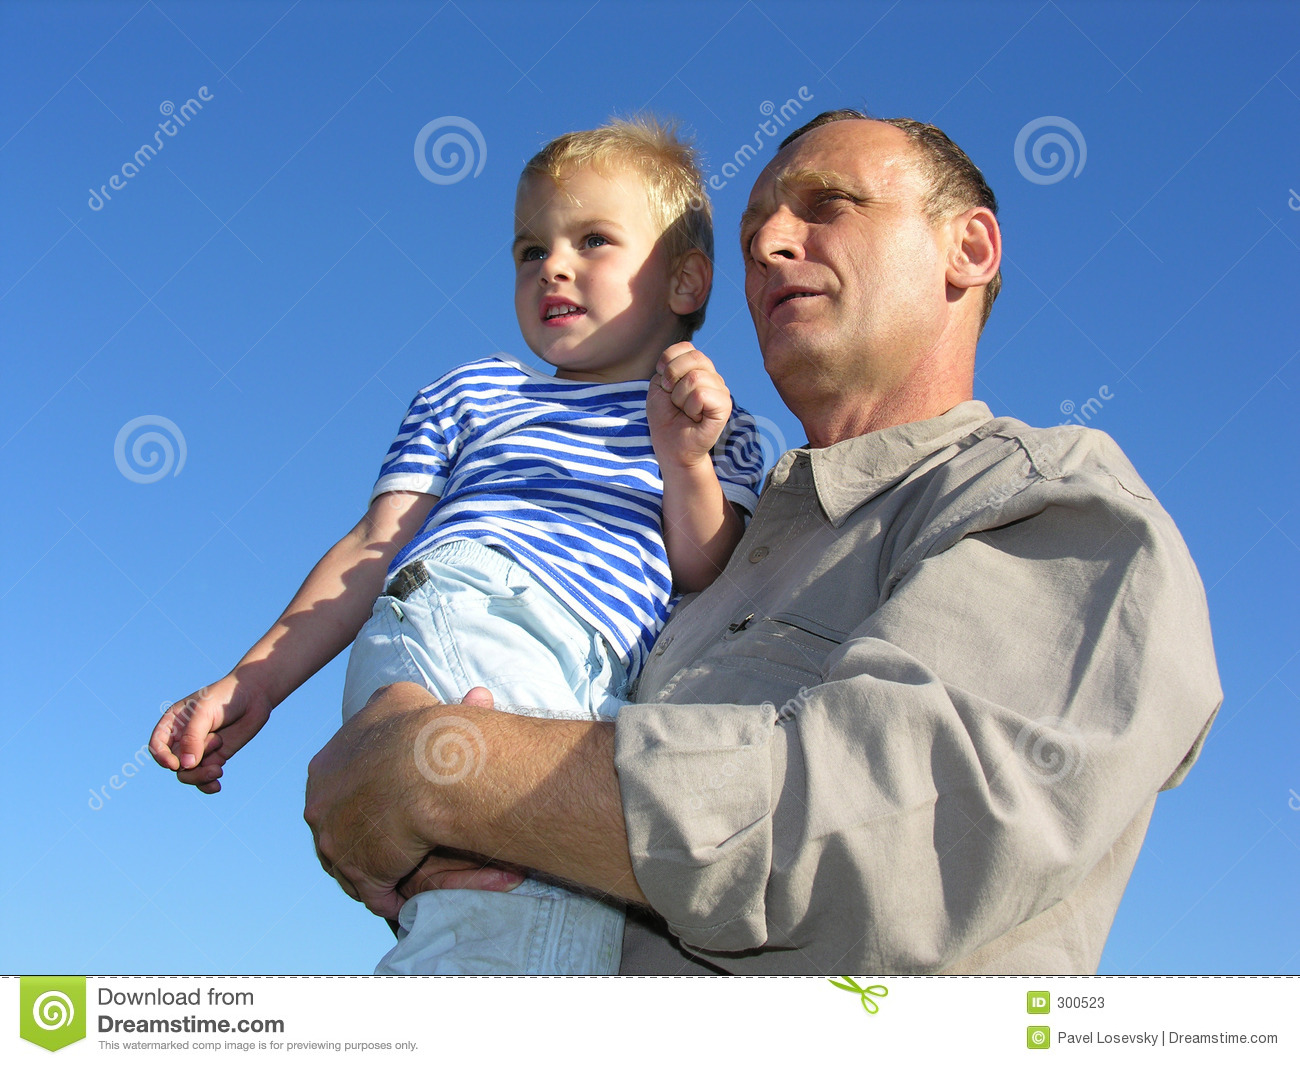 Grandfather with grandson 2